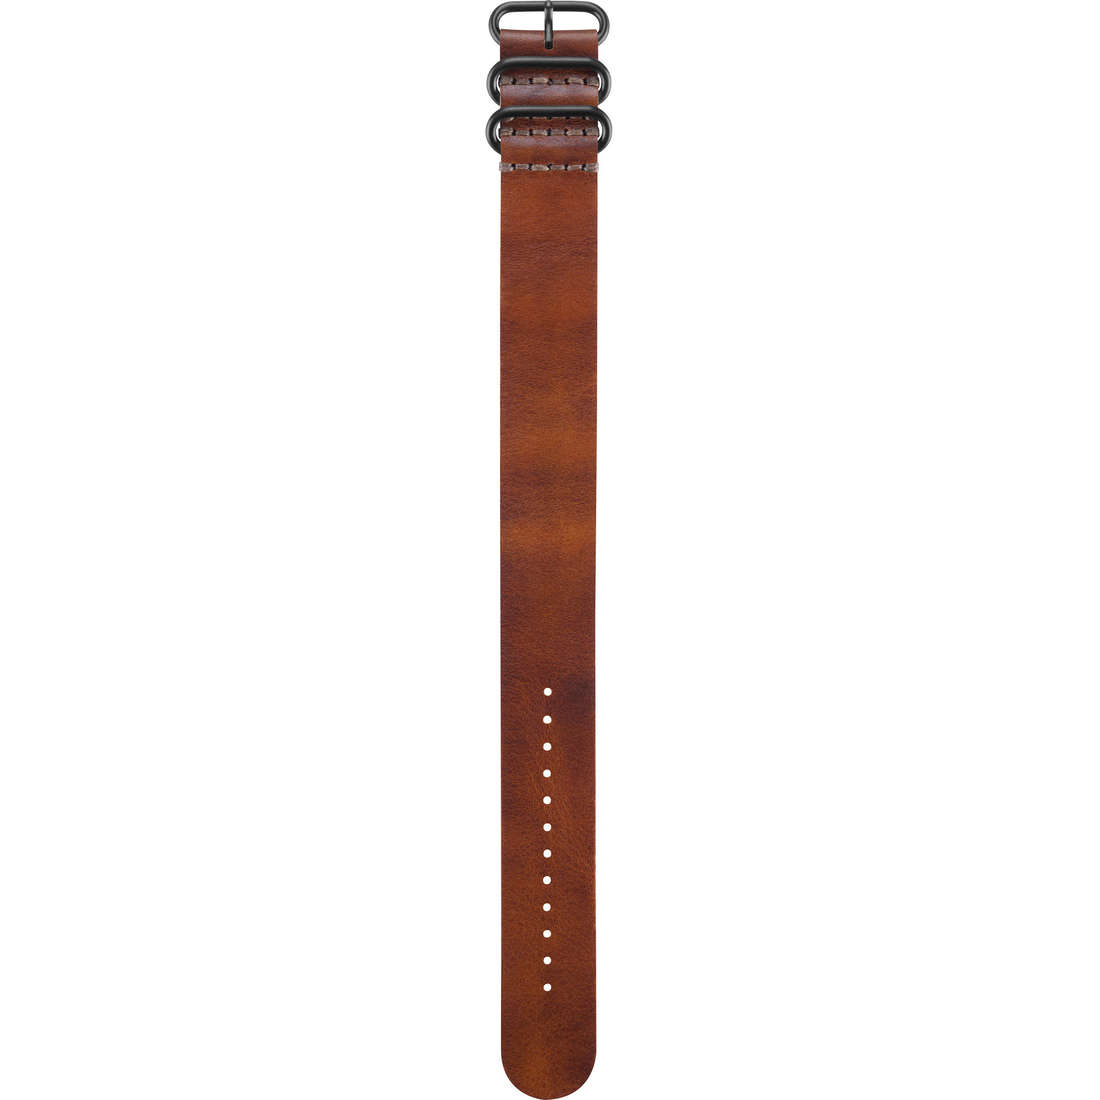 watch watch bands unisex Garmin 010-12168-21